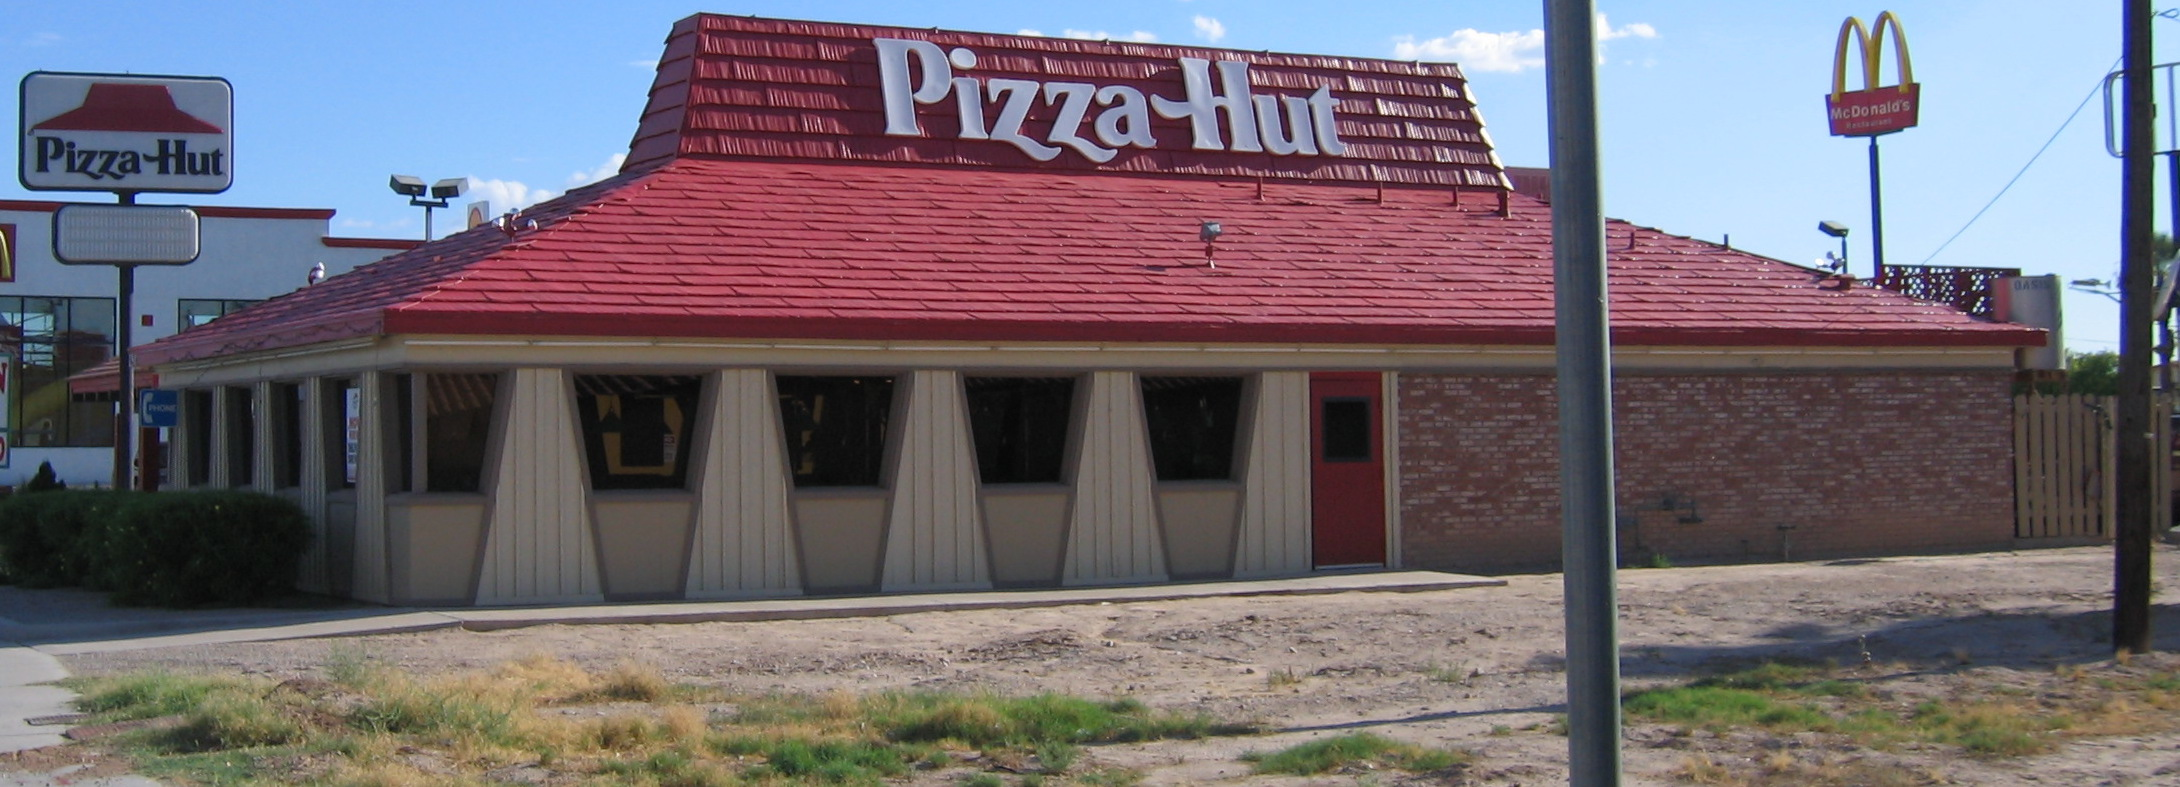 Pizza_Hut_Restaurant